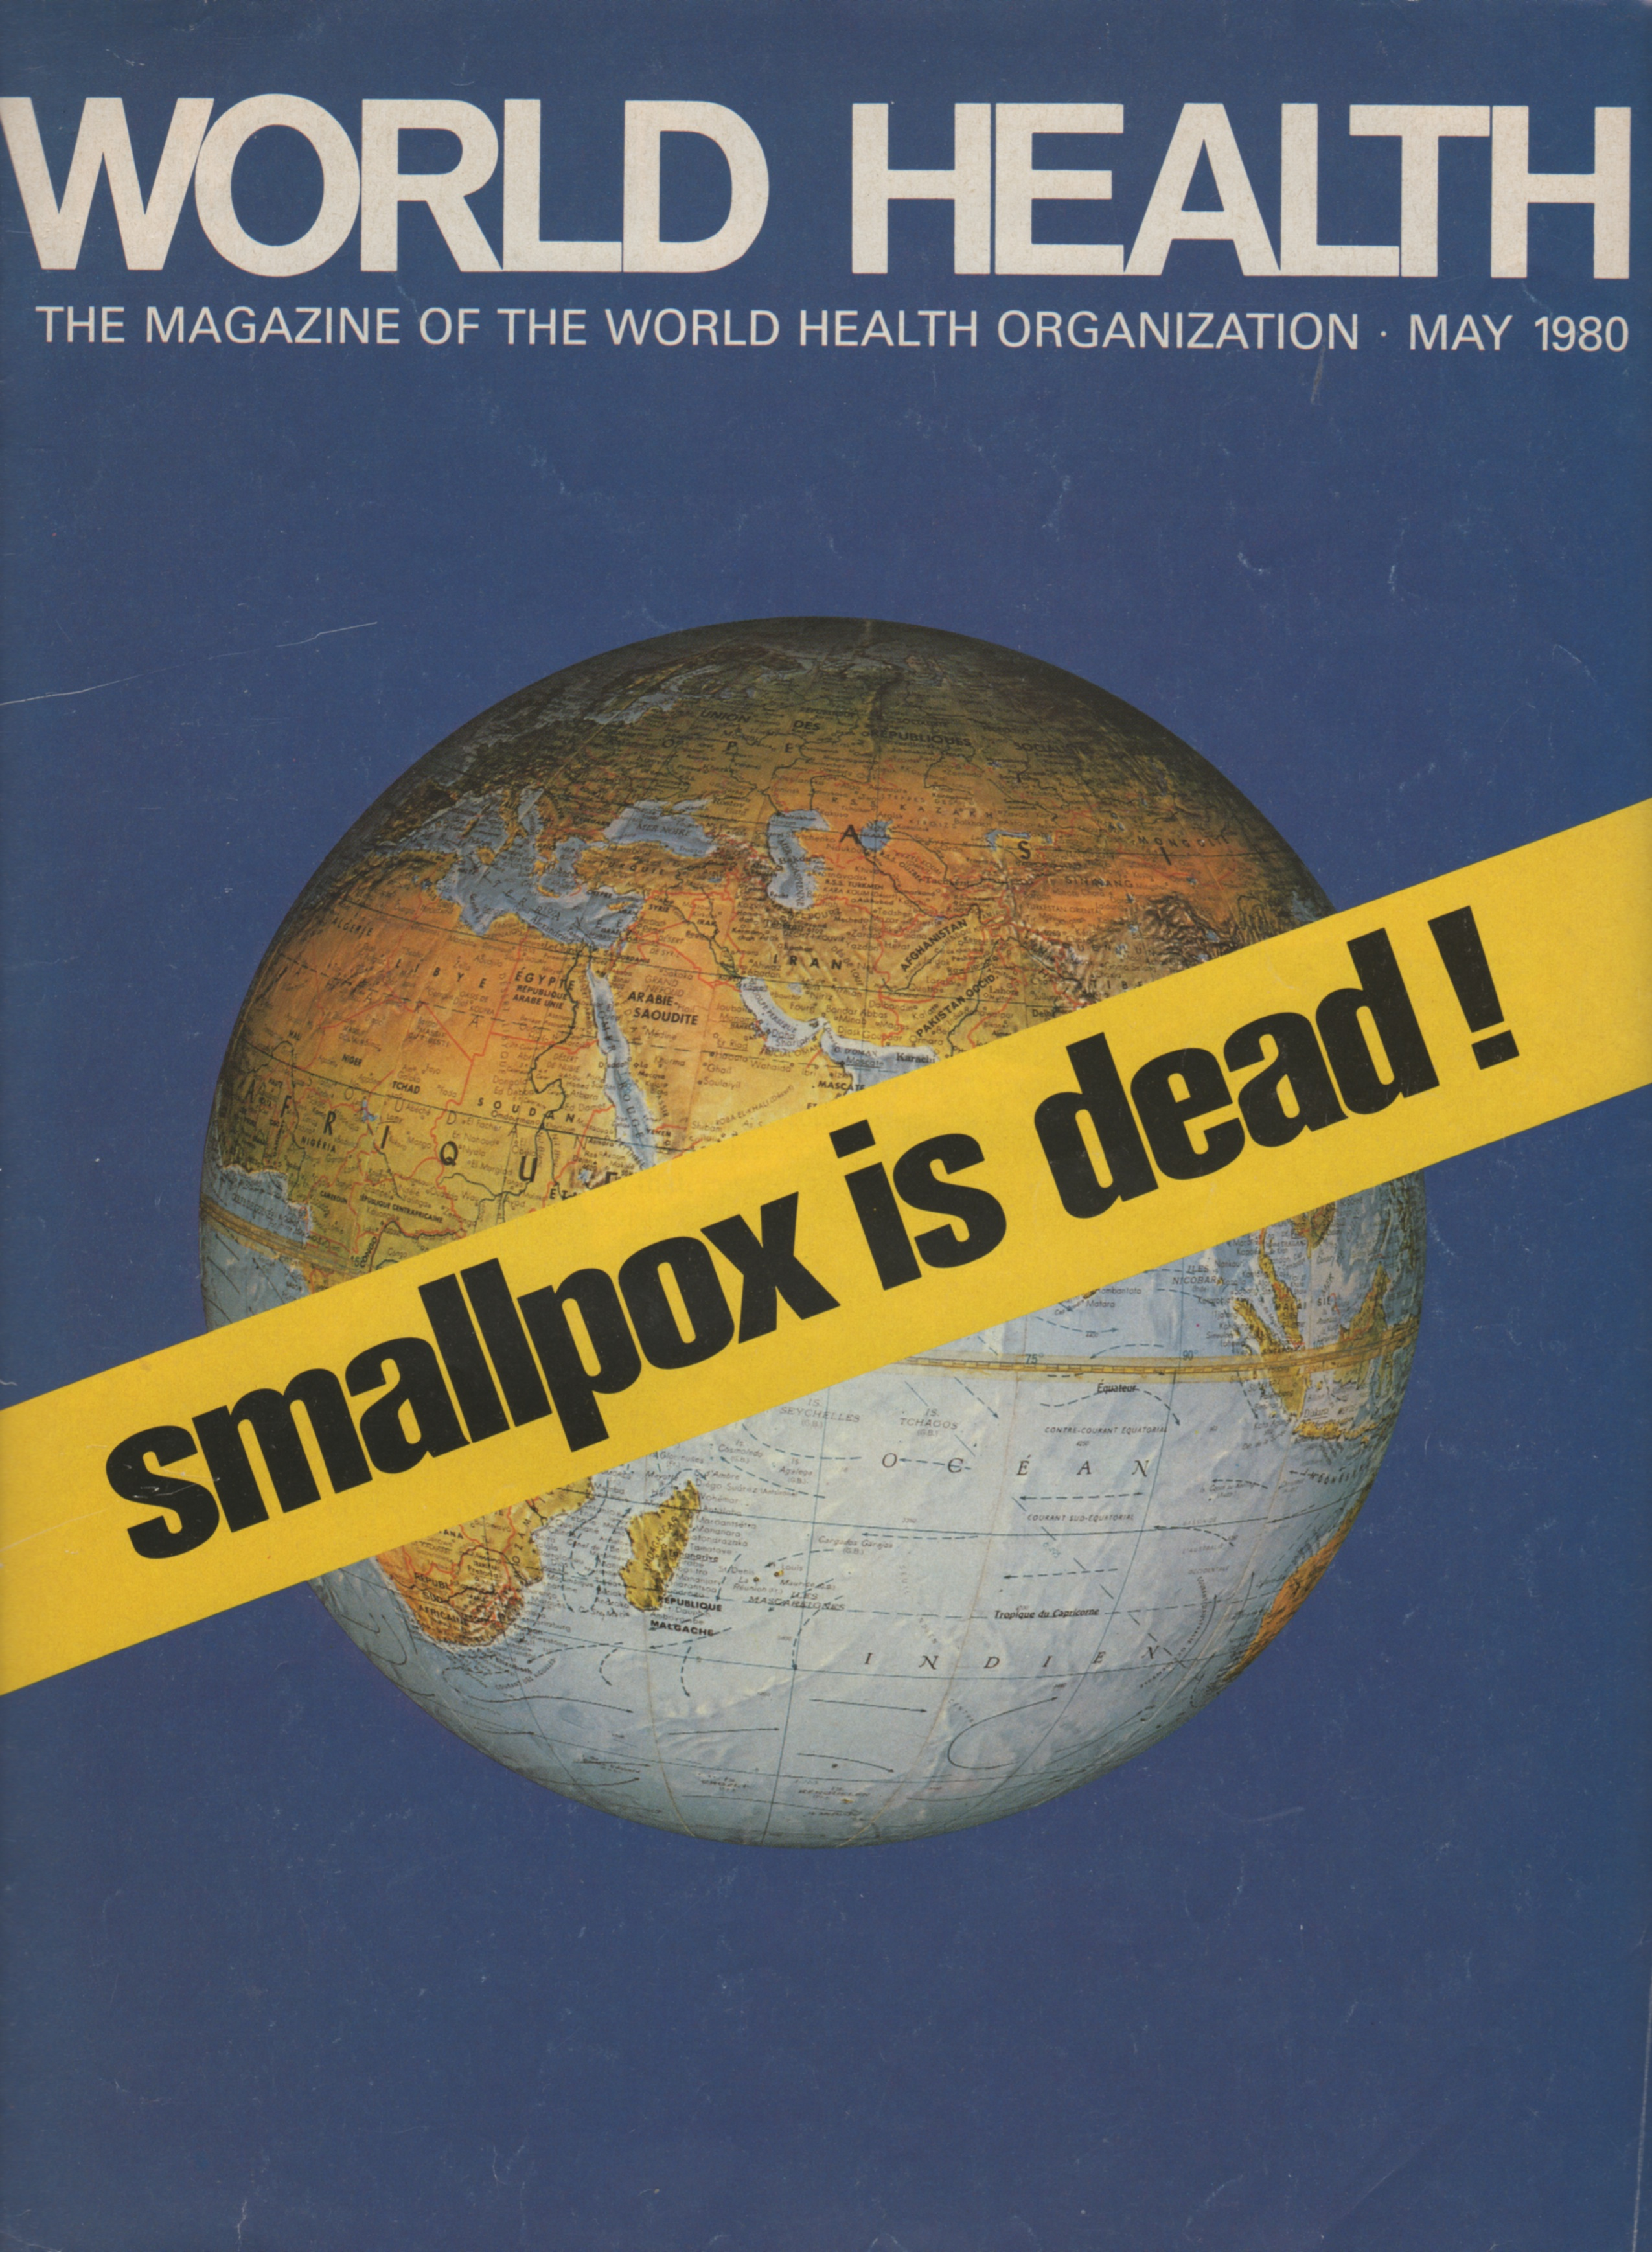 """Smallpox Is Dead"" was the final result of the WHO global smallpox eradication program, as detailed in the May 1980 edition of World Health, the WHO's magazine. The full issue is available  at http://www.who.int/csr/disease/smallpox/WHO_RAS_SEP_ID0556_WorldHealth_May1980_ENG.pdf"